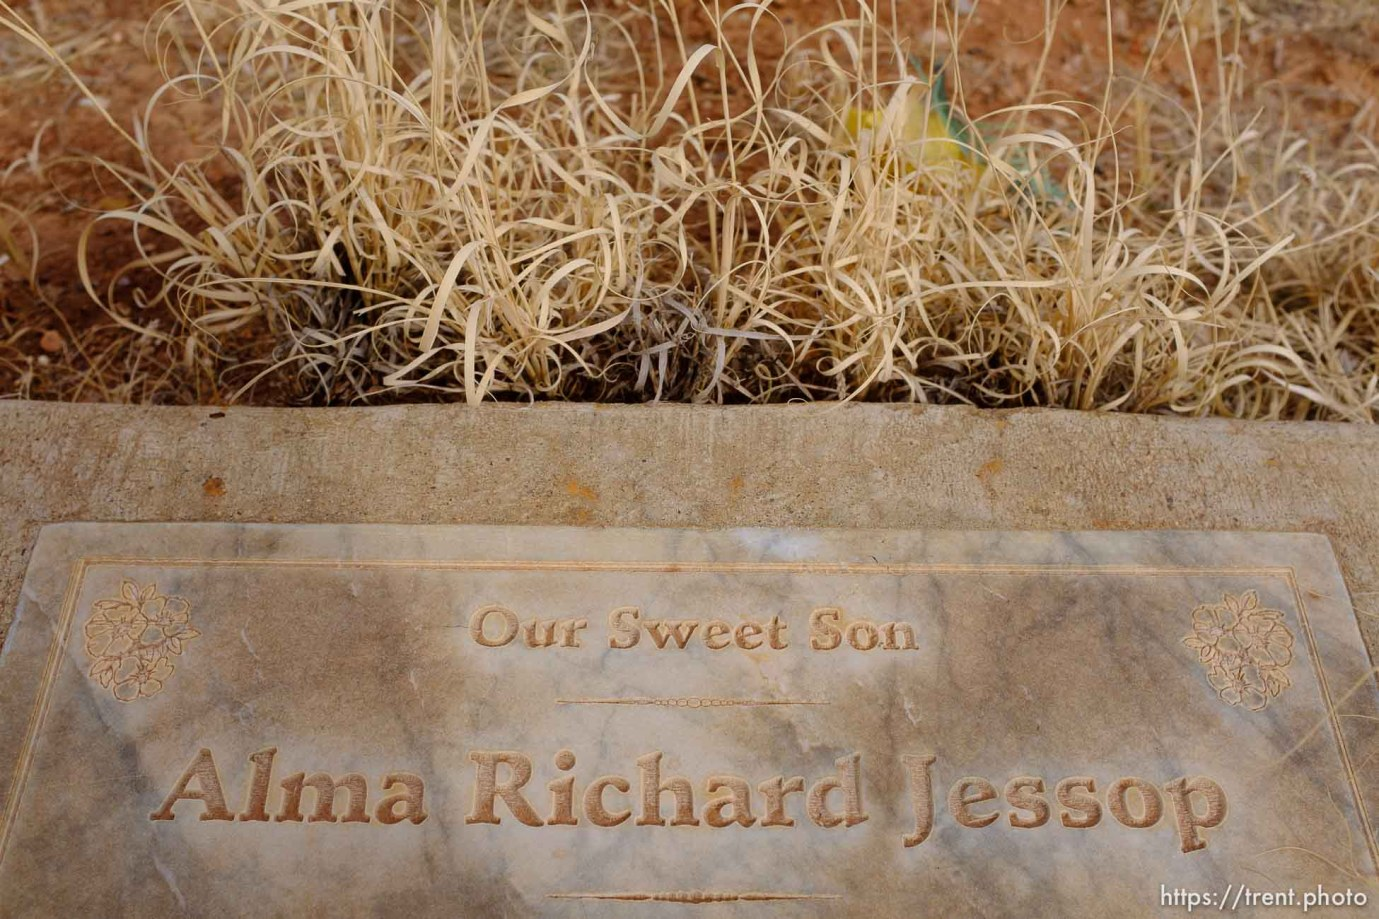 Alma Richard Jessop, 1989-1994. Our Sweet Son. Isaac W. Carling Memorial Park, Colorado City, Friday March 16, 2018.